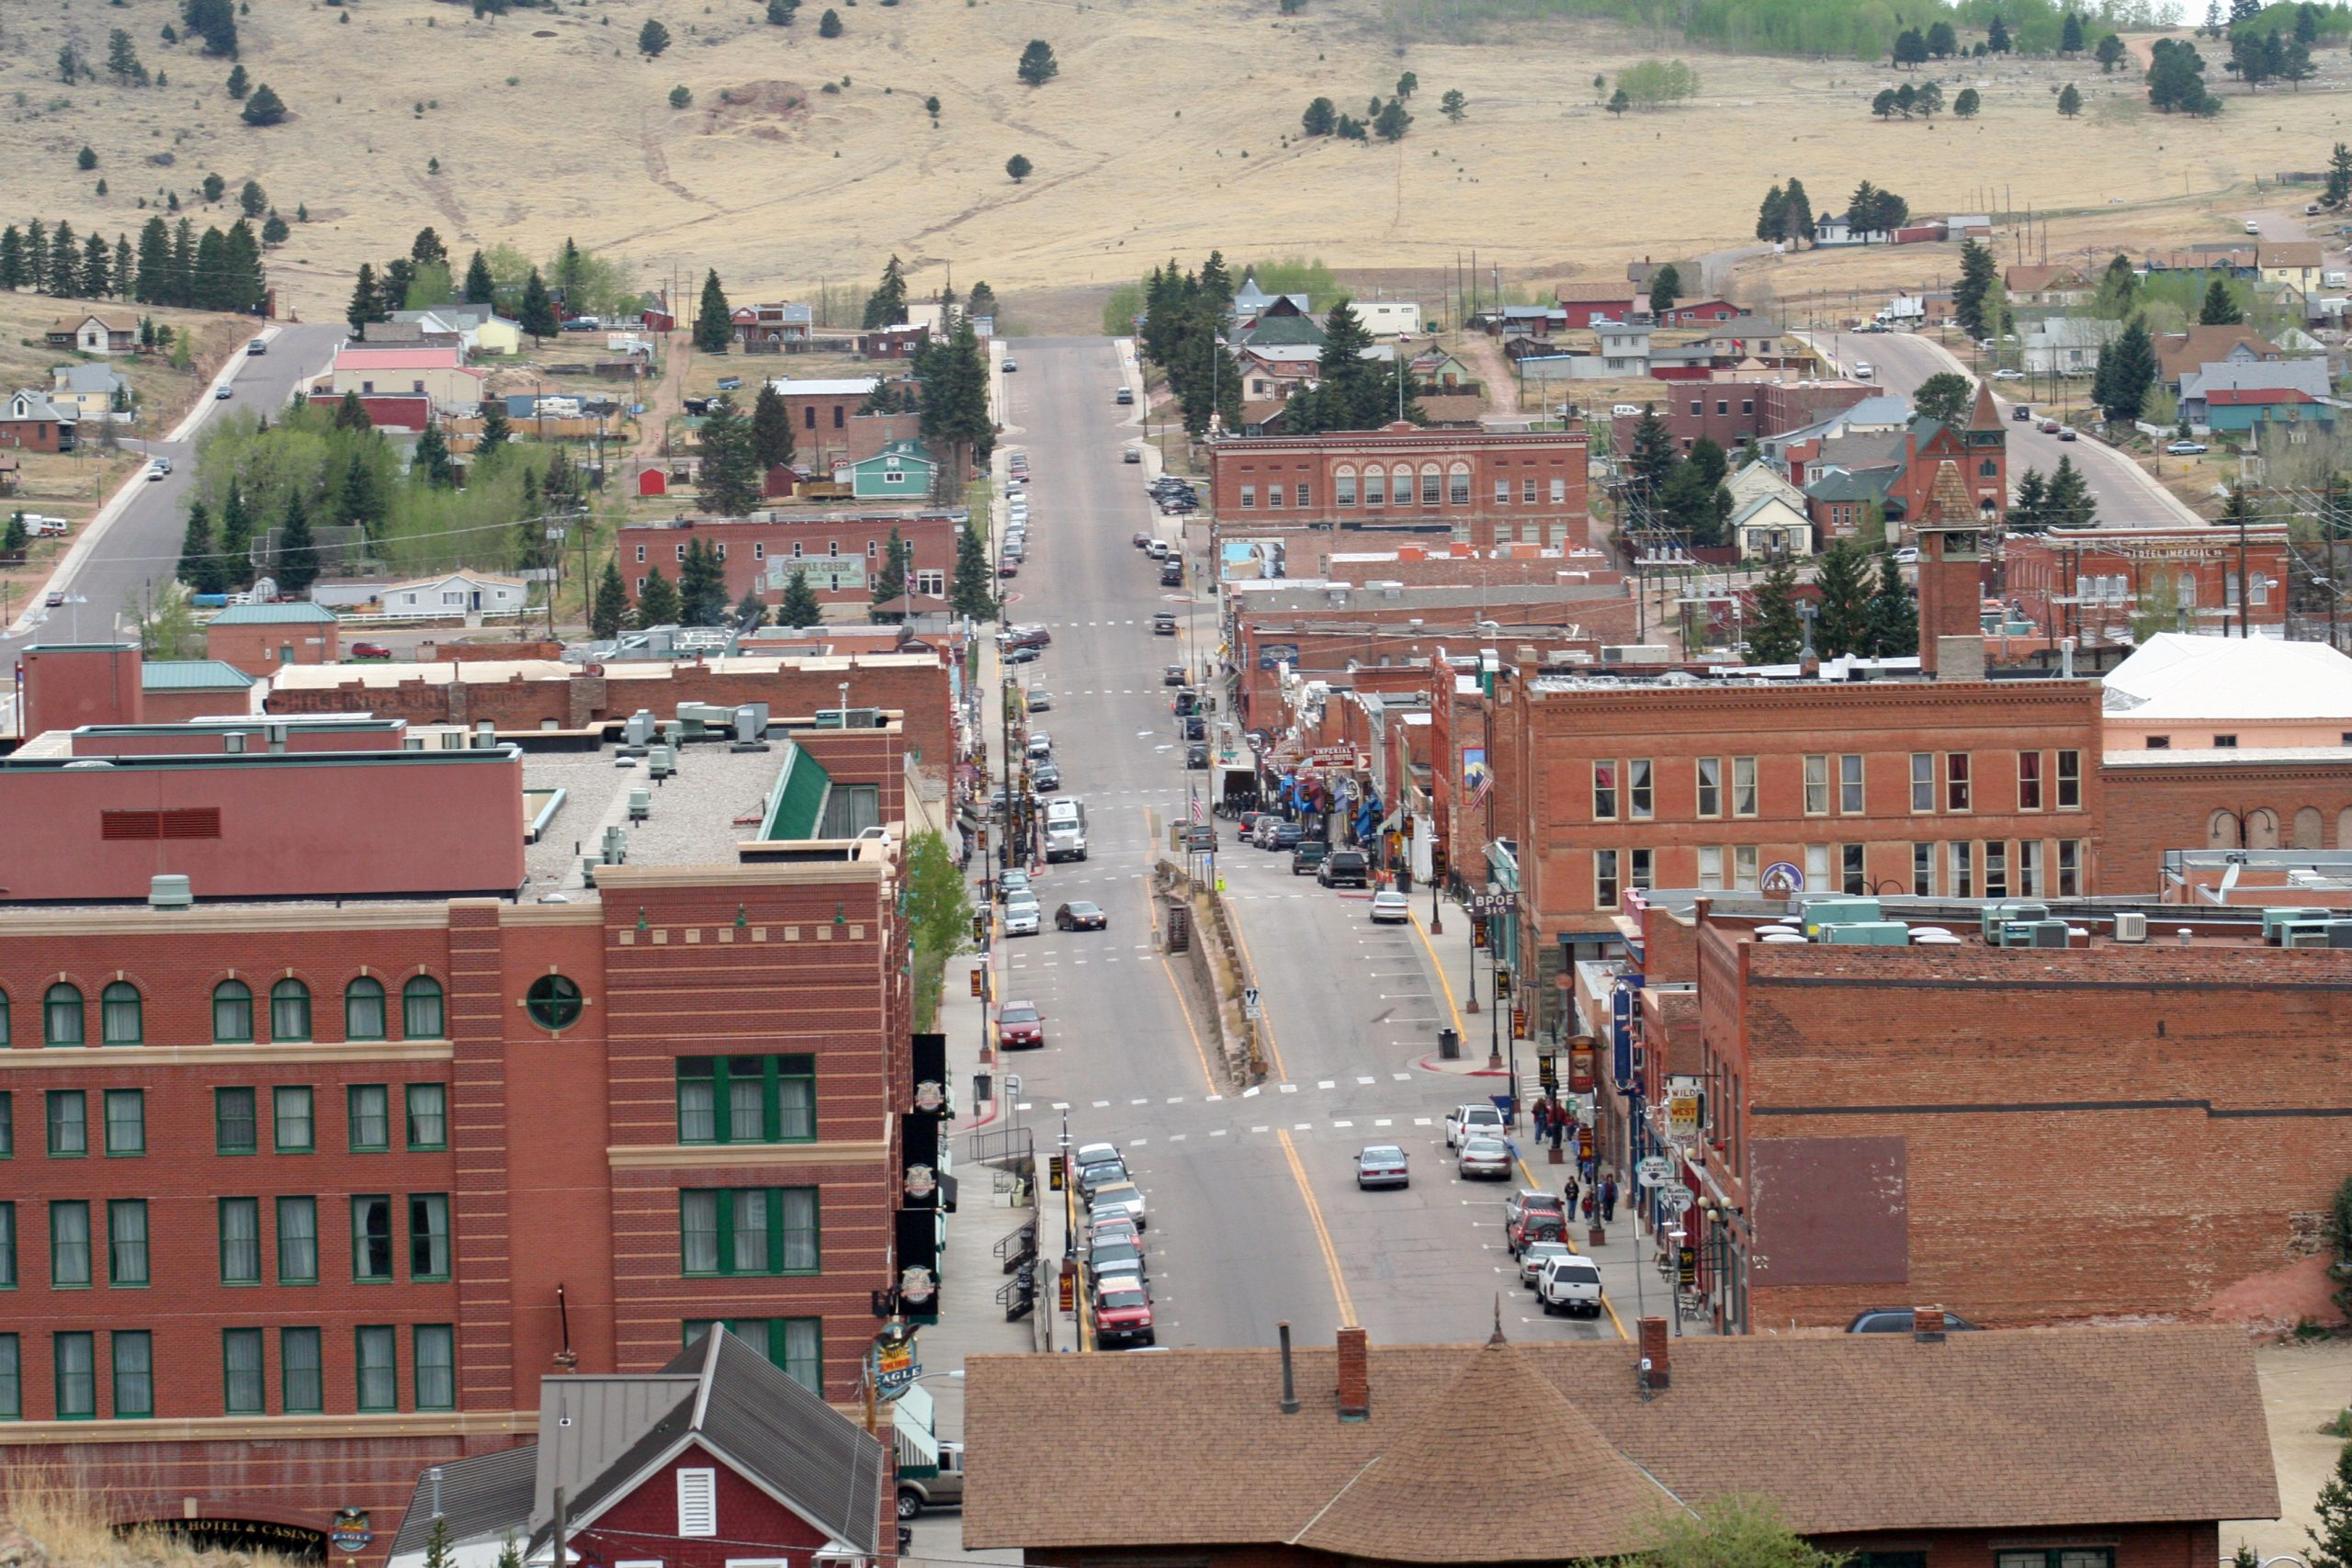 The Teller County Film Commission hopes that historic western towns like Cripple Creek (pictured) and Victor will draw film crews to Teller County.